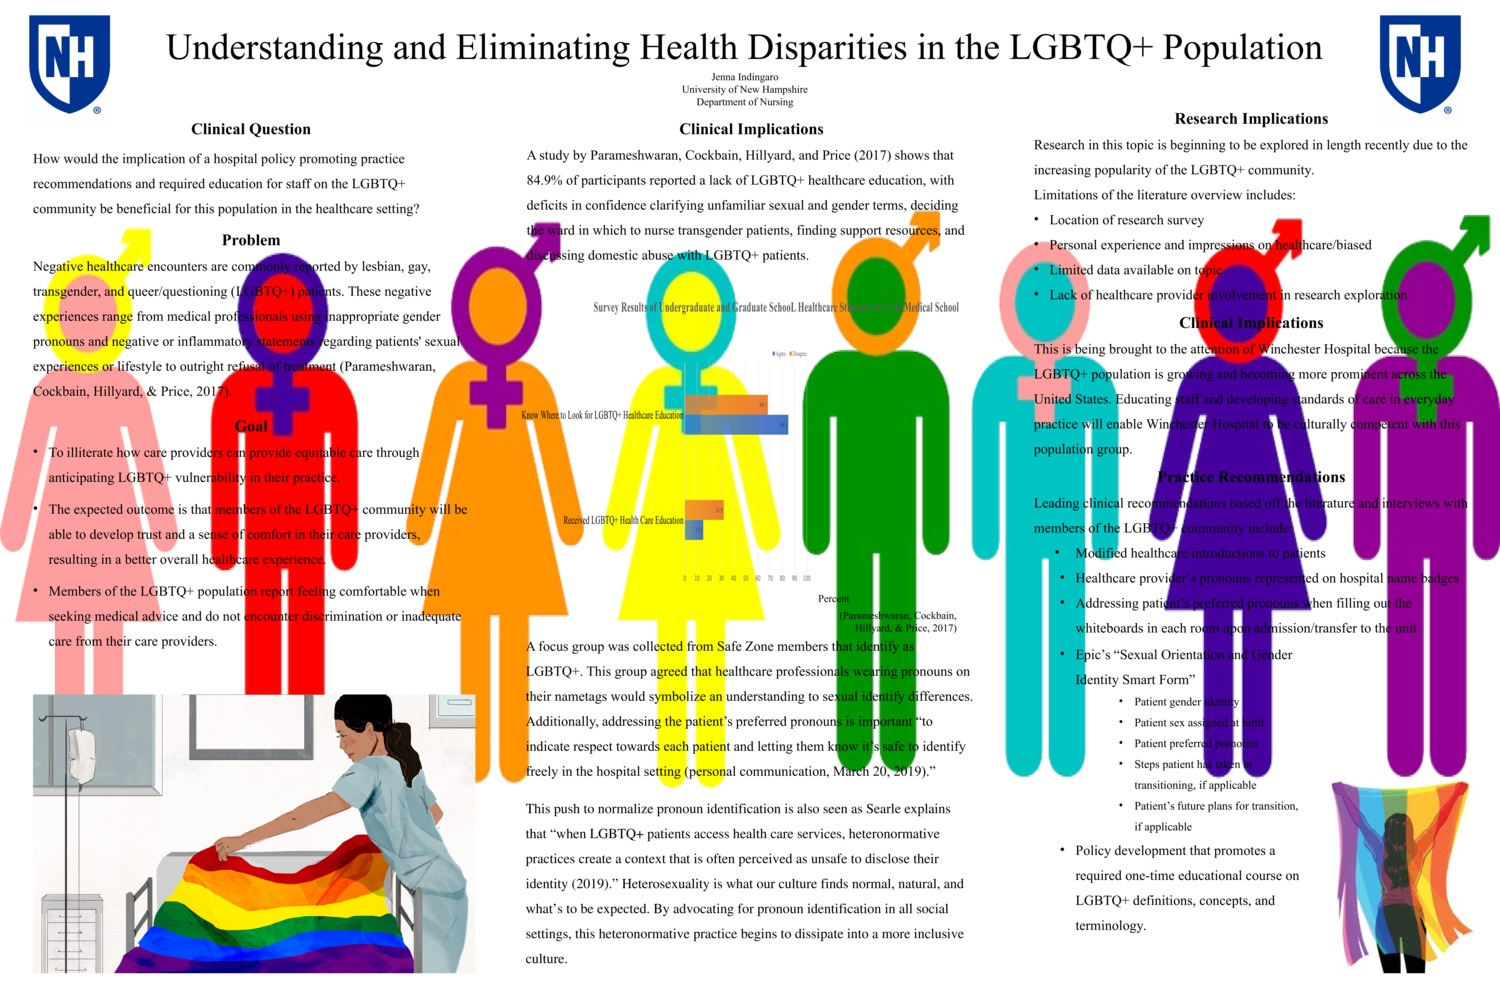 Understanding And Eliminating Health Disparities In The Lgbtq+ Population by jmi1003